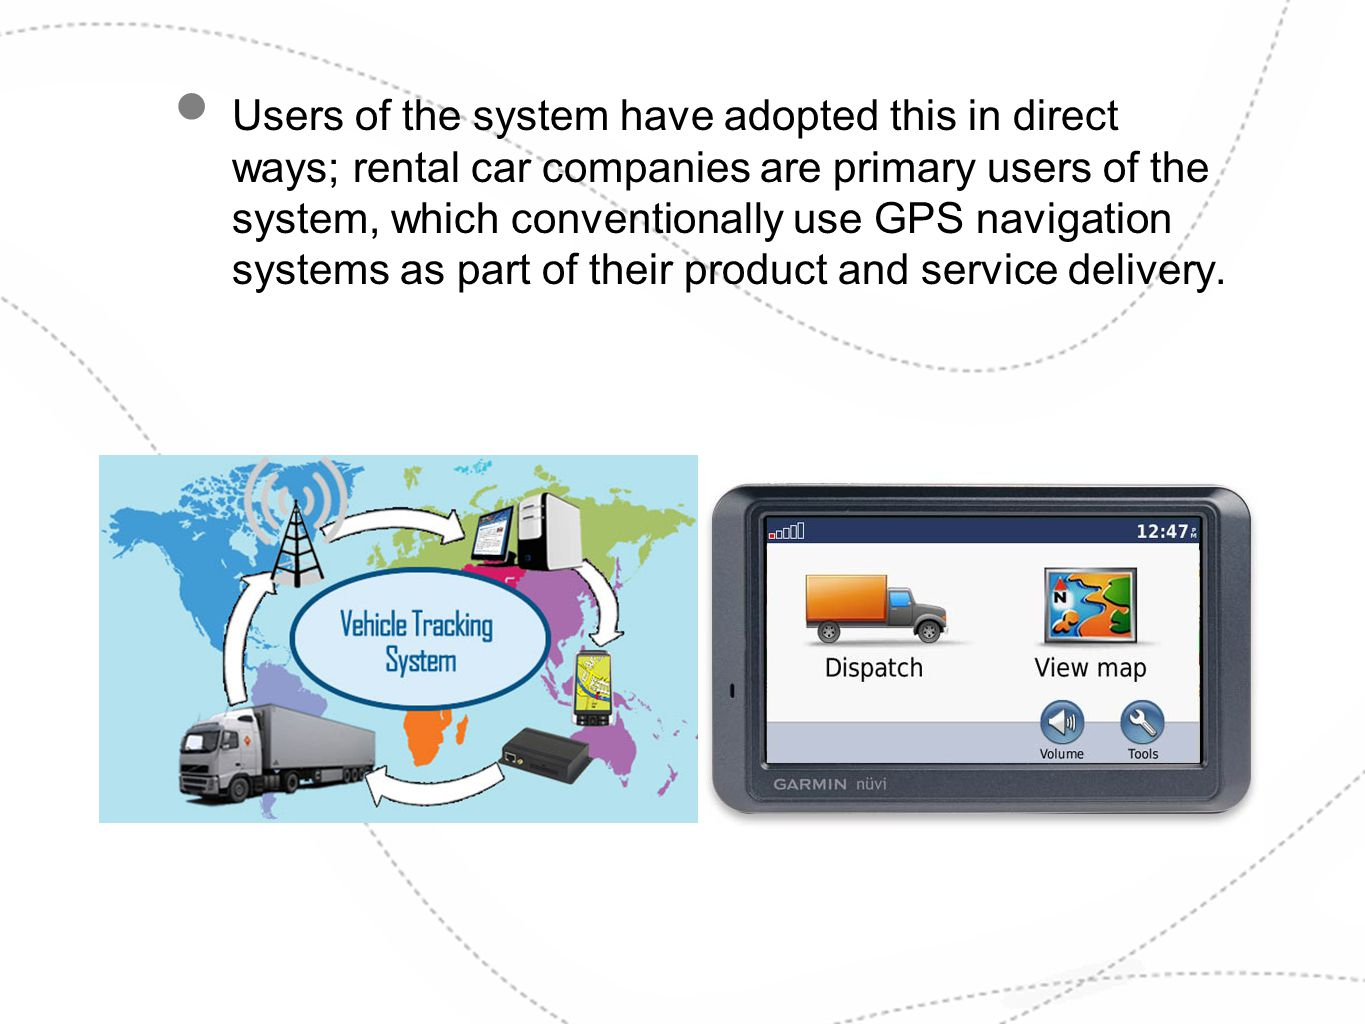 Users of the system have adopted this in direct ways; rental car companies are primary users of the system, which conventionally use GPS navigation sy